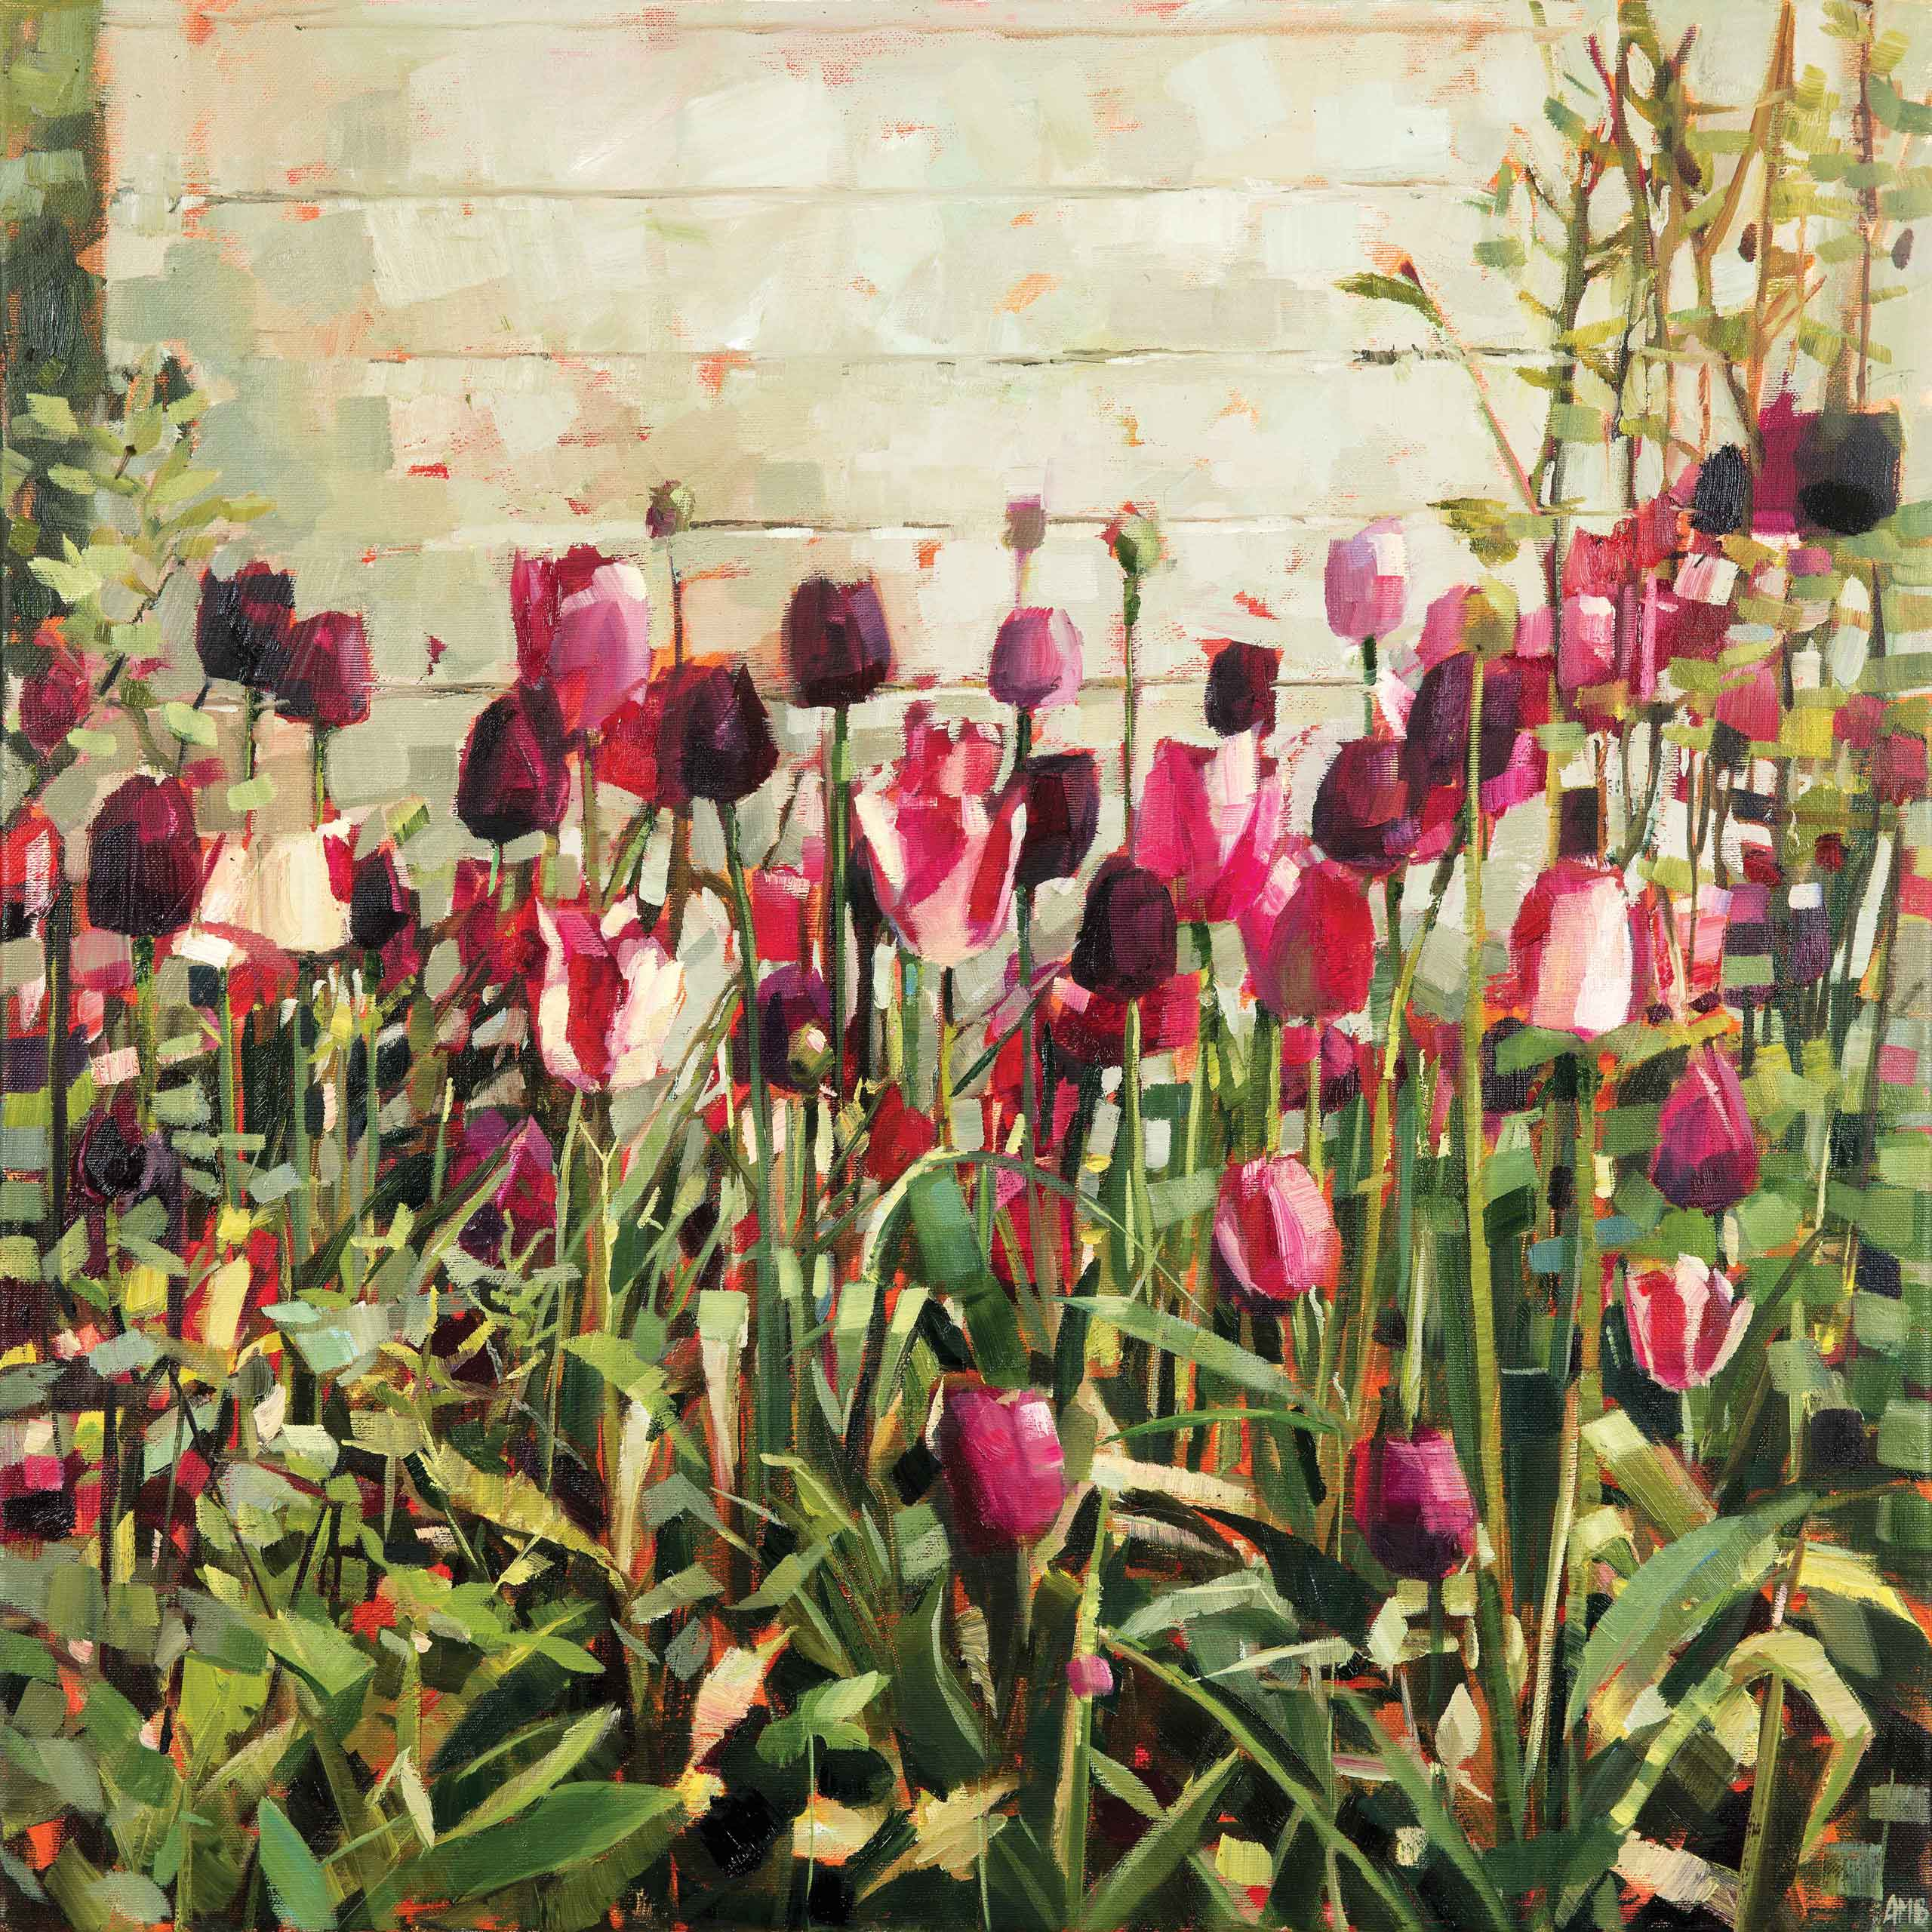 Art Greeting Card by Anne-Marie Butlin, Oilpainting, Tulips in the garden